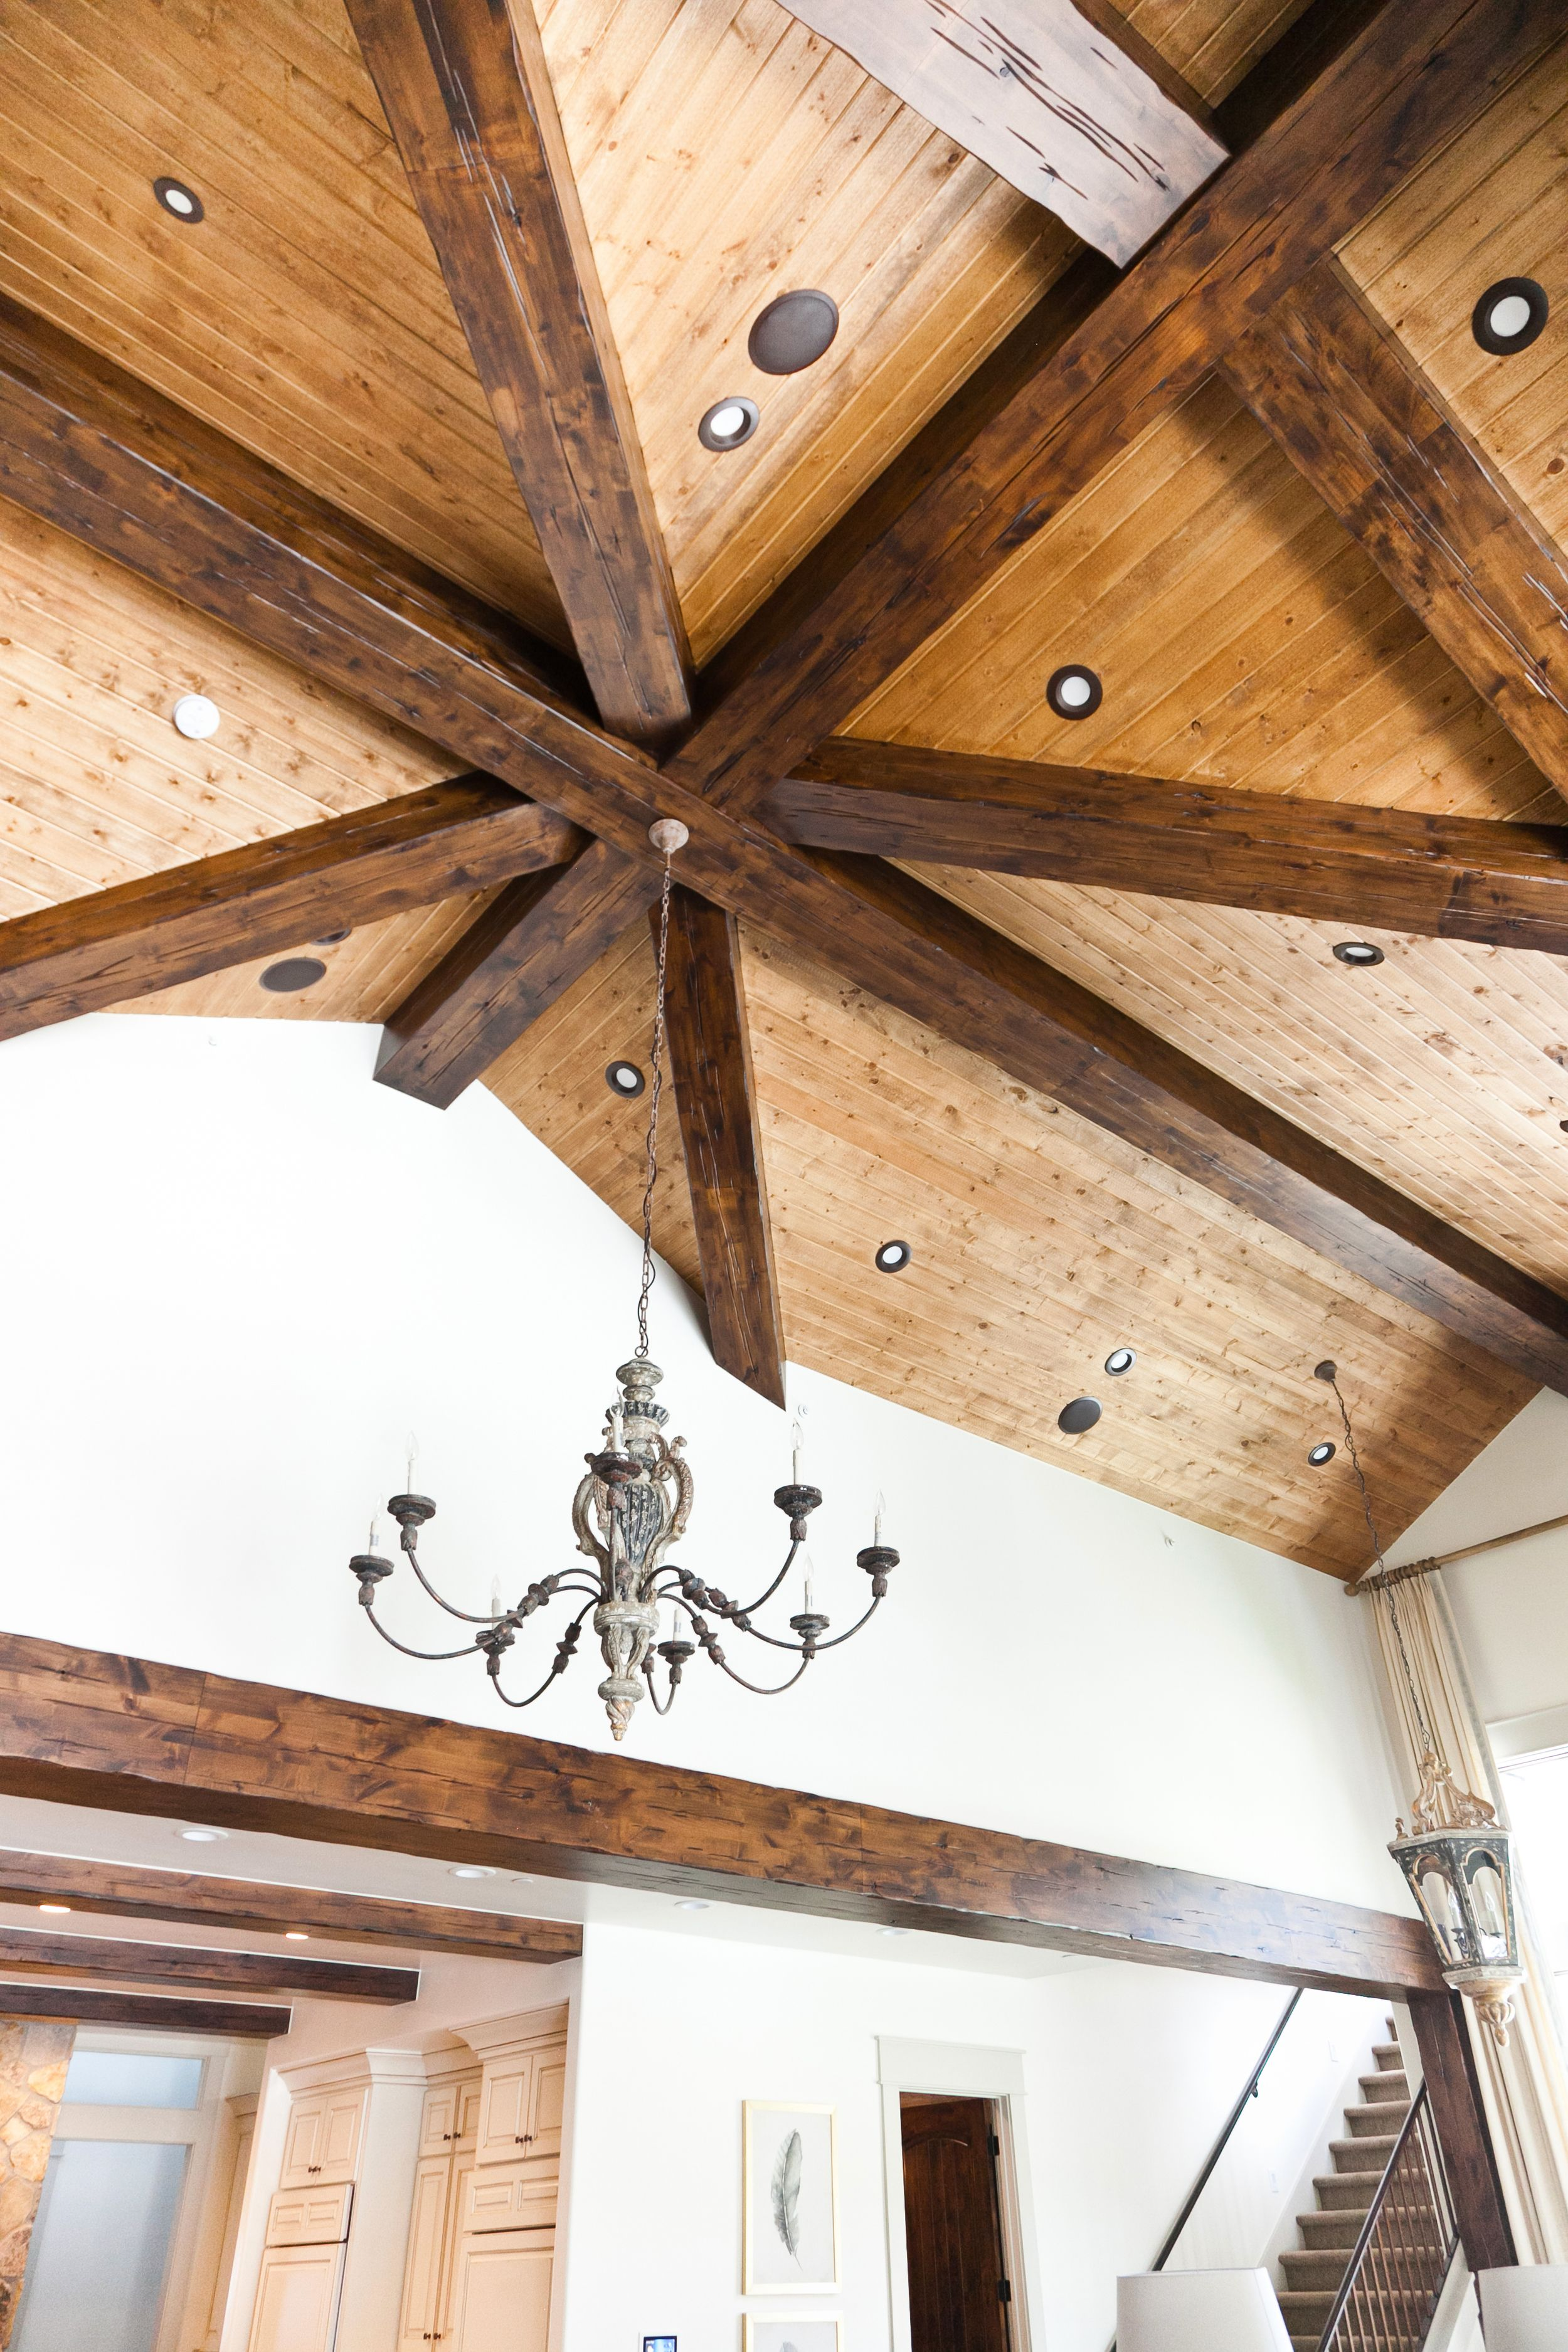 Timber Framed Ceiling With Tongue And Groove Tongue And Groove Ceiling Log Home Interiors Cabin Decor